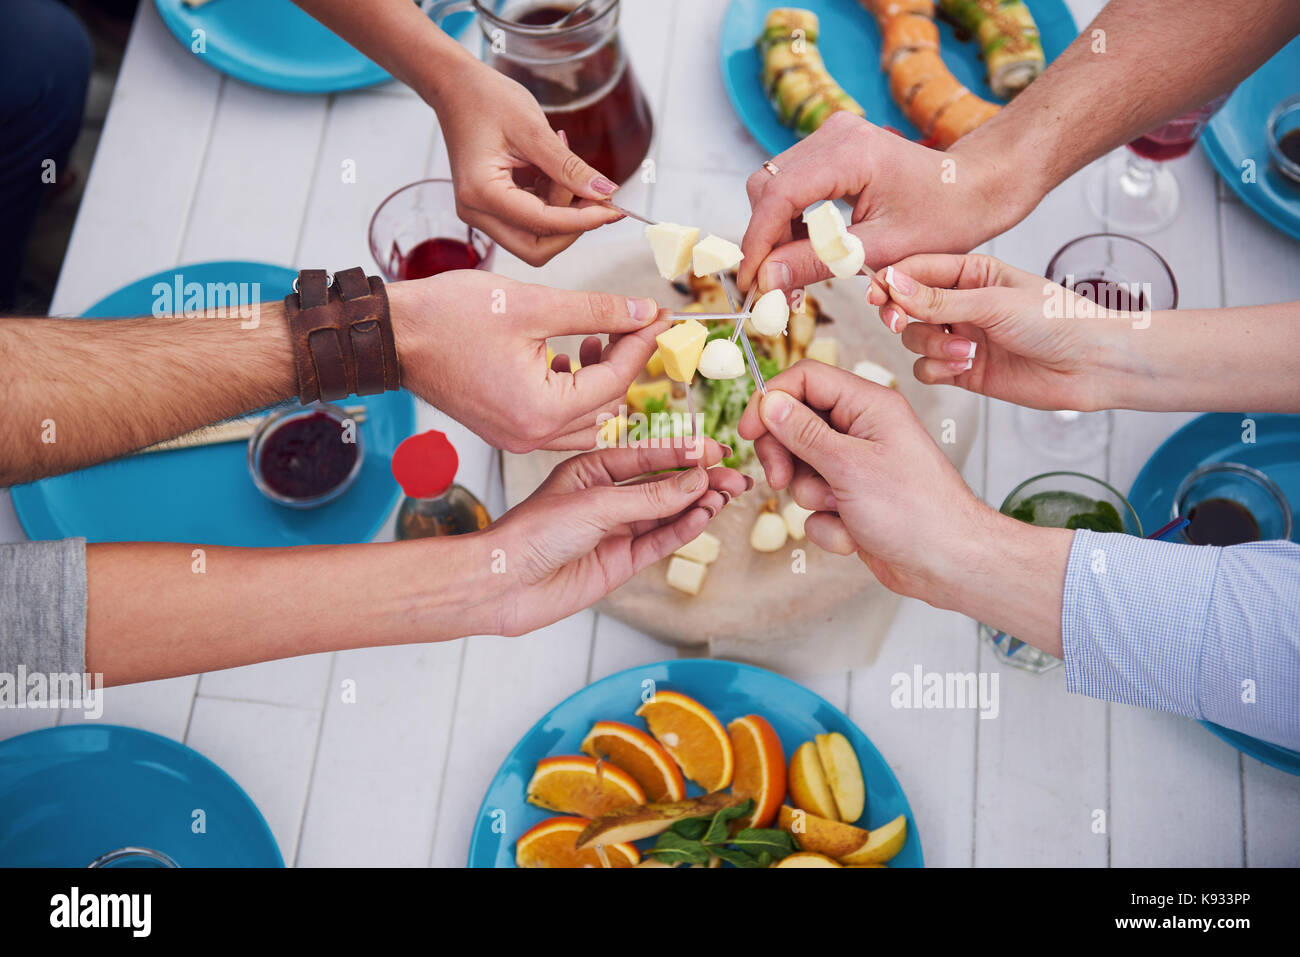 Friends birthday at a picnic - Stock Image